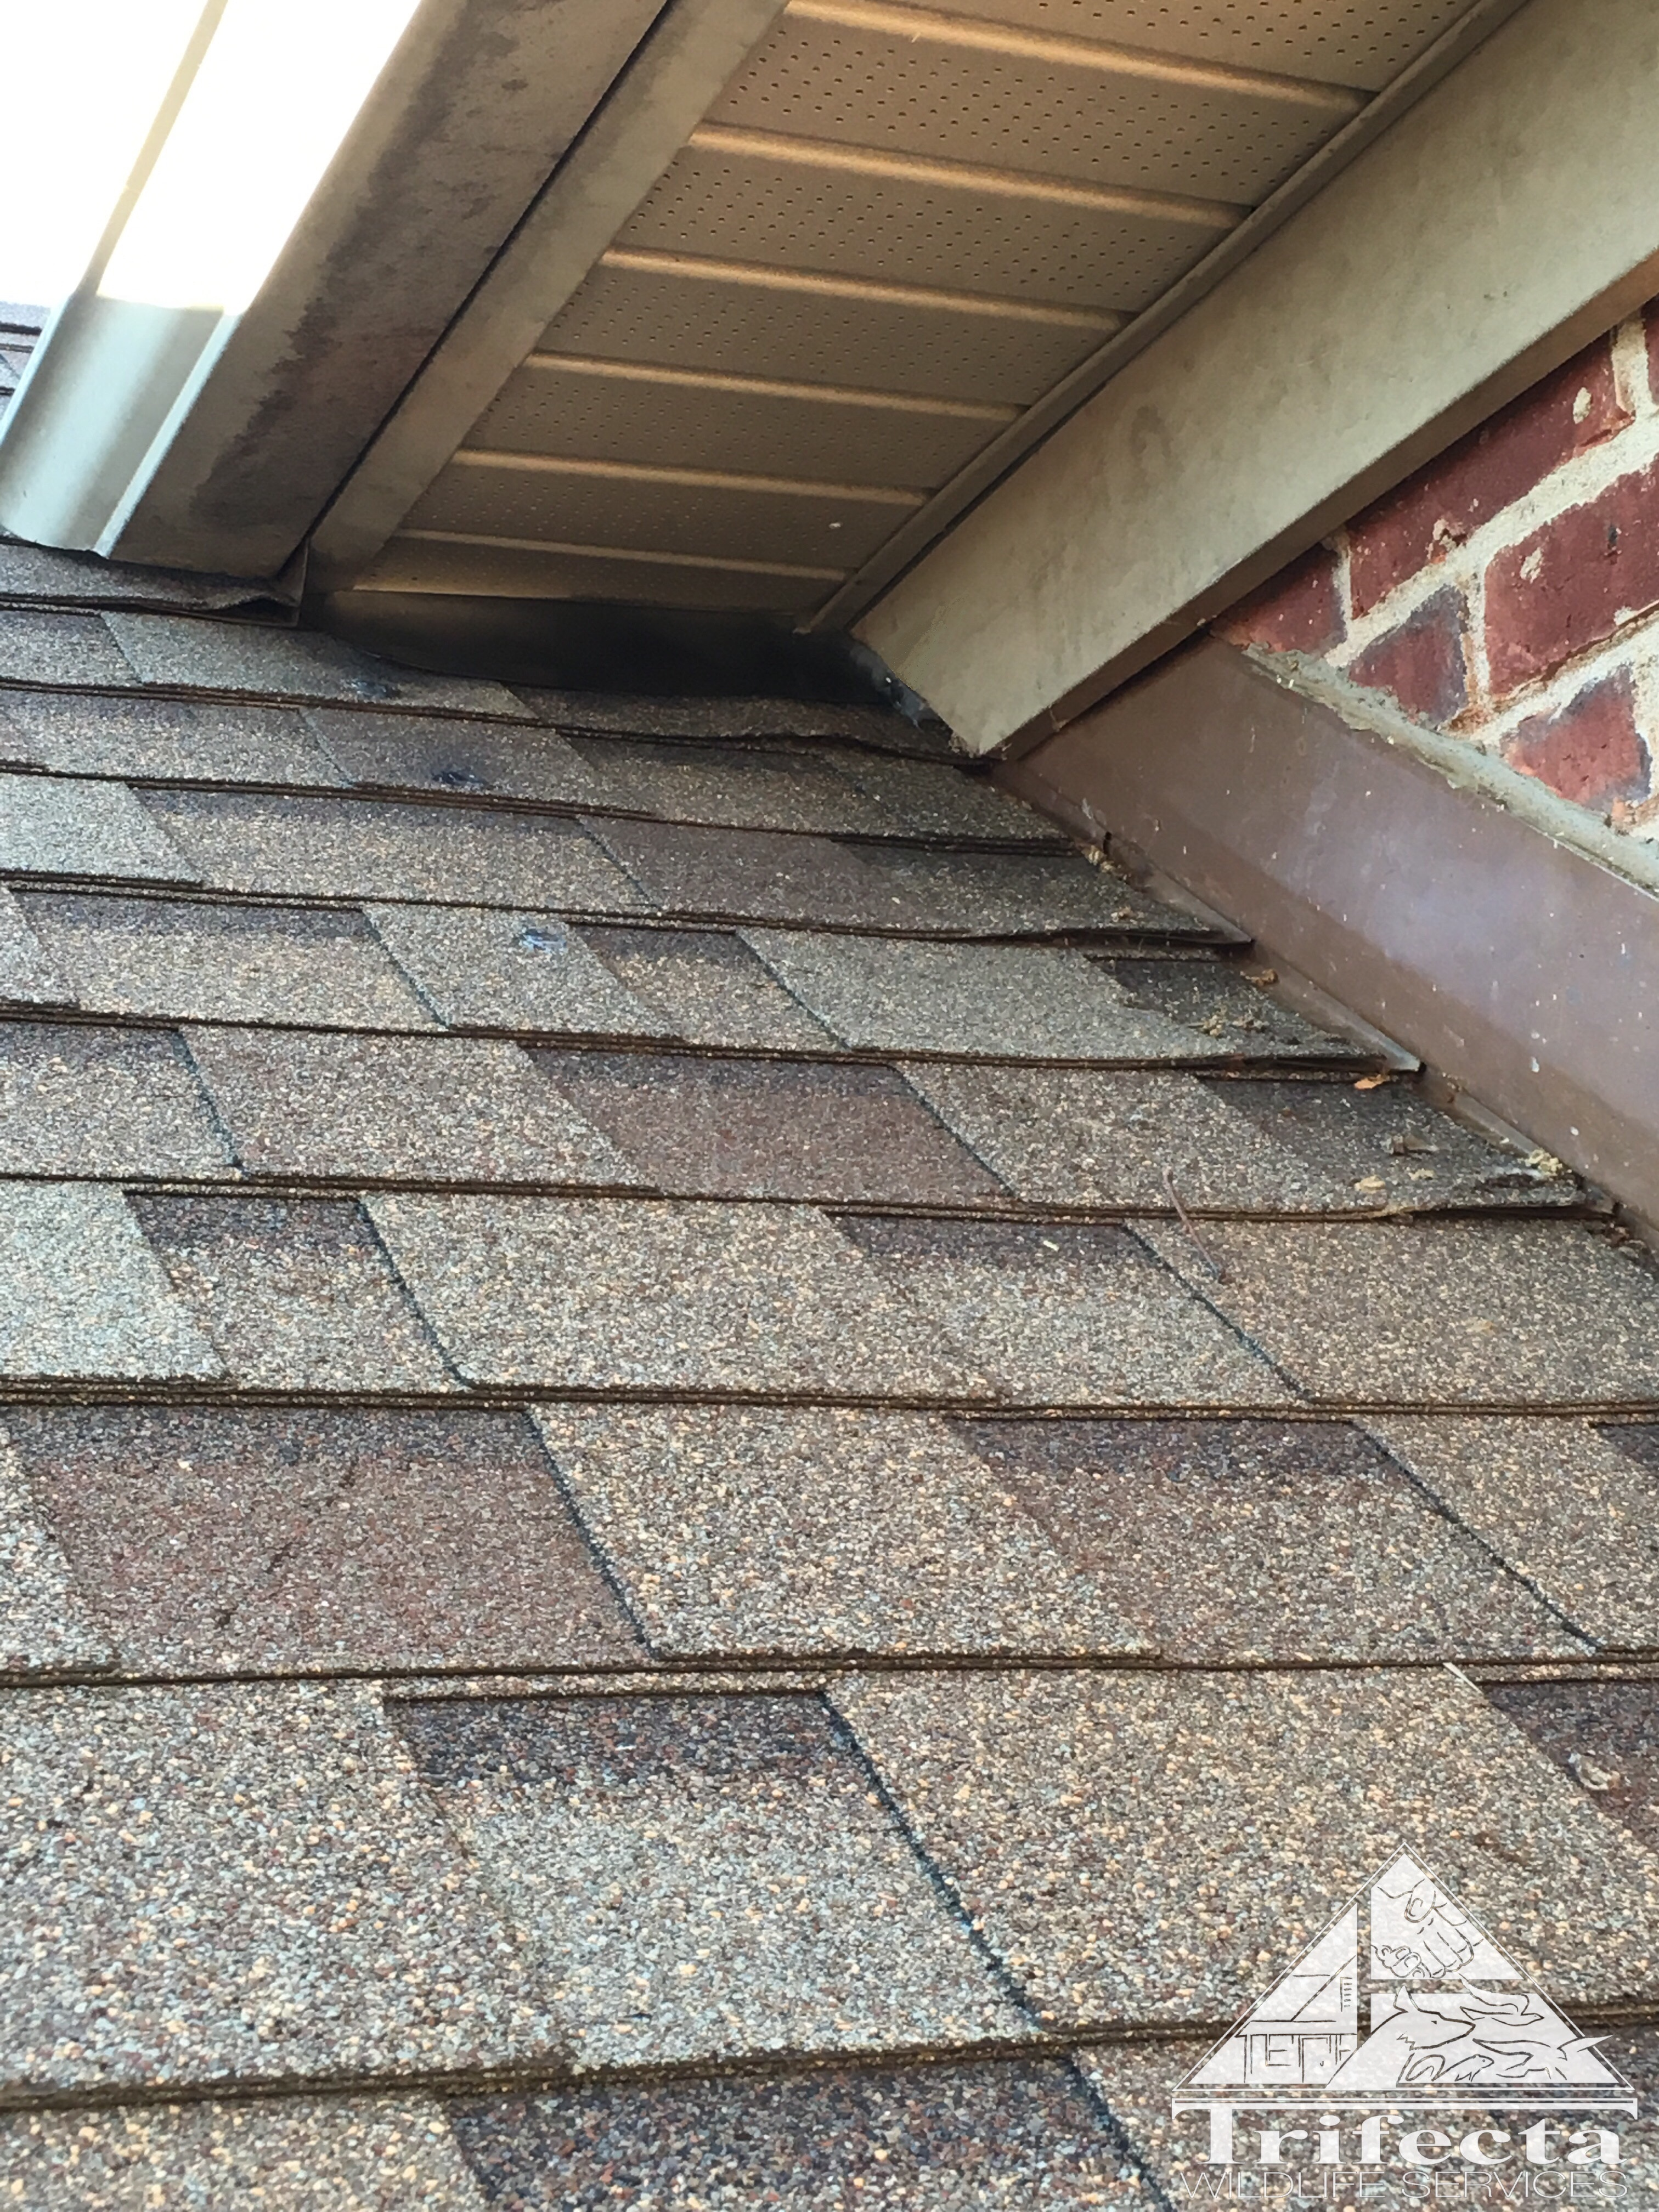 Completed repair of soffit return